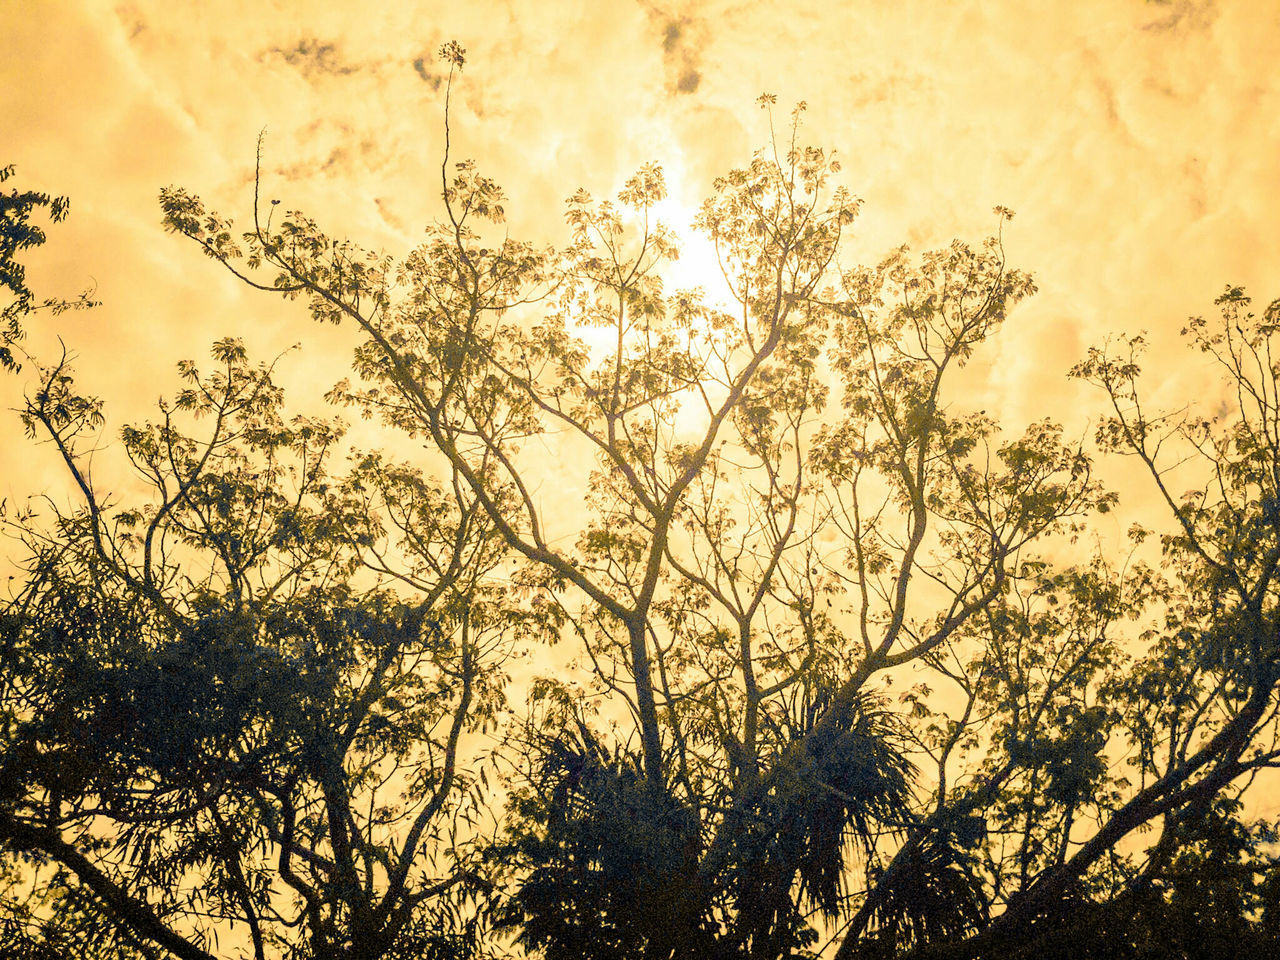 Nature Beauty In Nature No People Growth Sun Silhouette Sky Outdoors Tree Close-up Day ISO